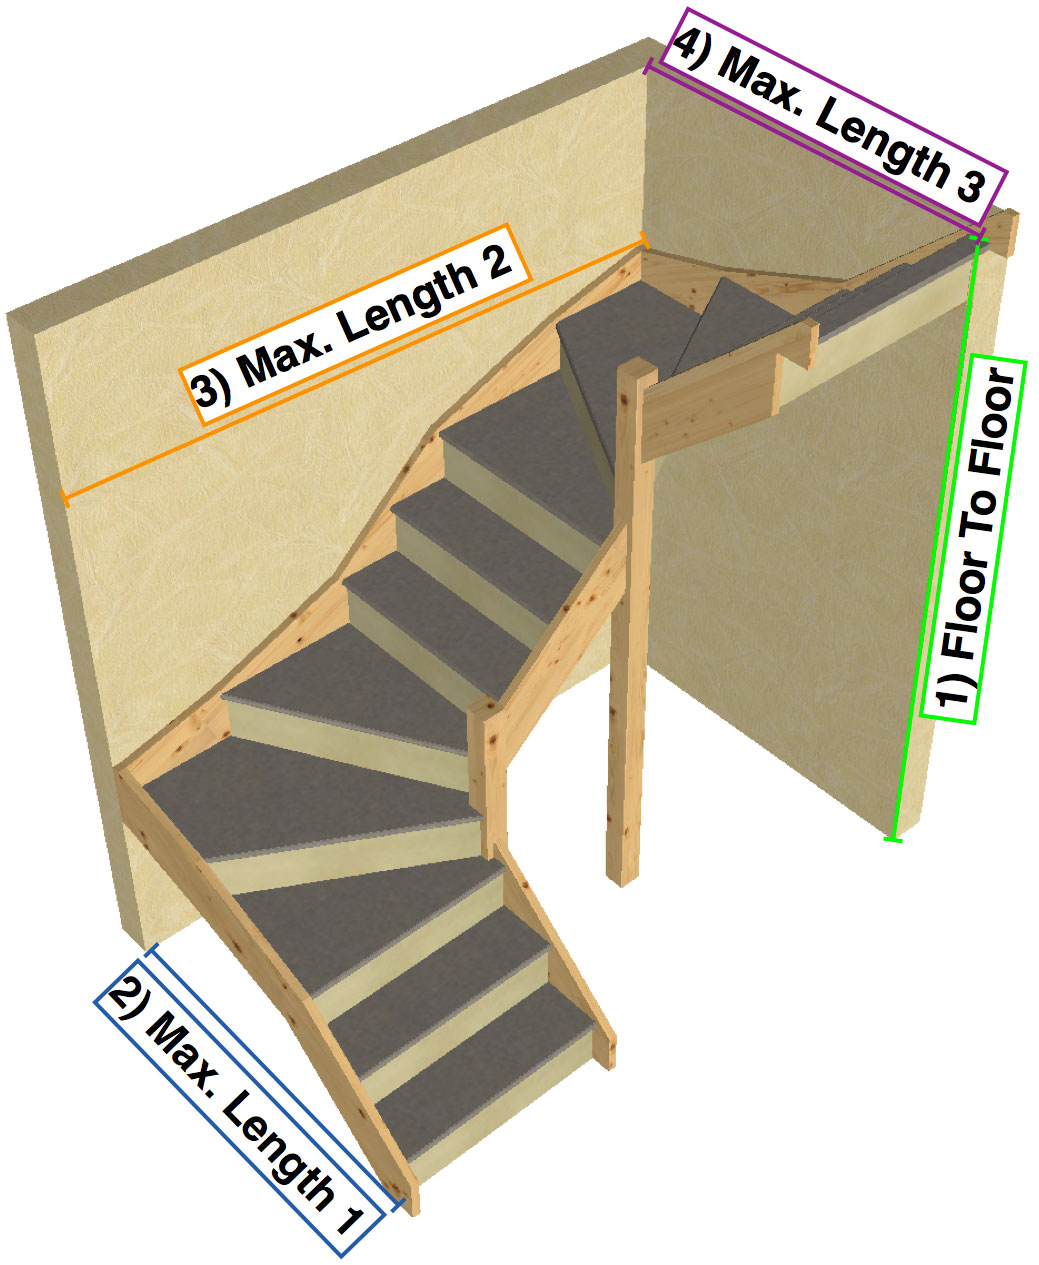 Tkstairs On How To Measure A Double Turn Staircase. Easy Stair Calculator